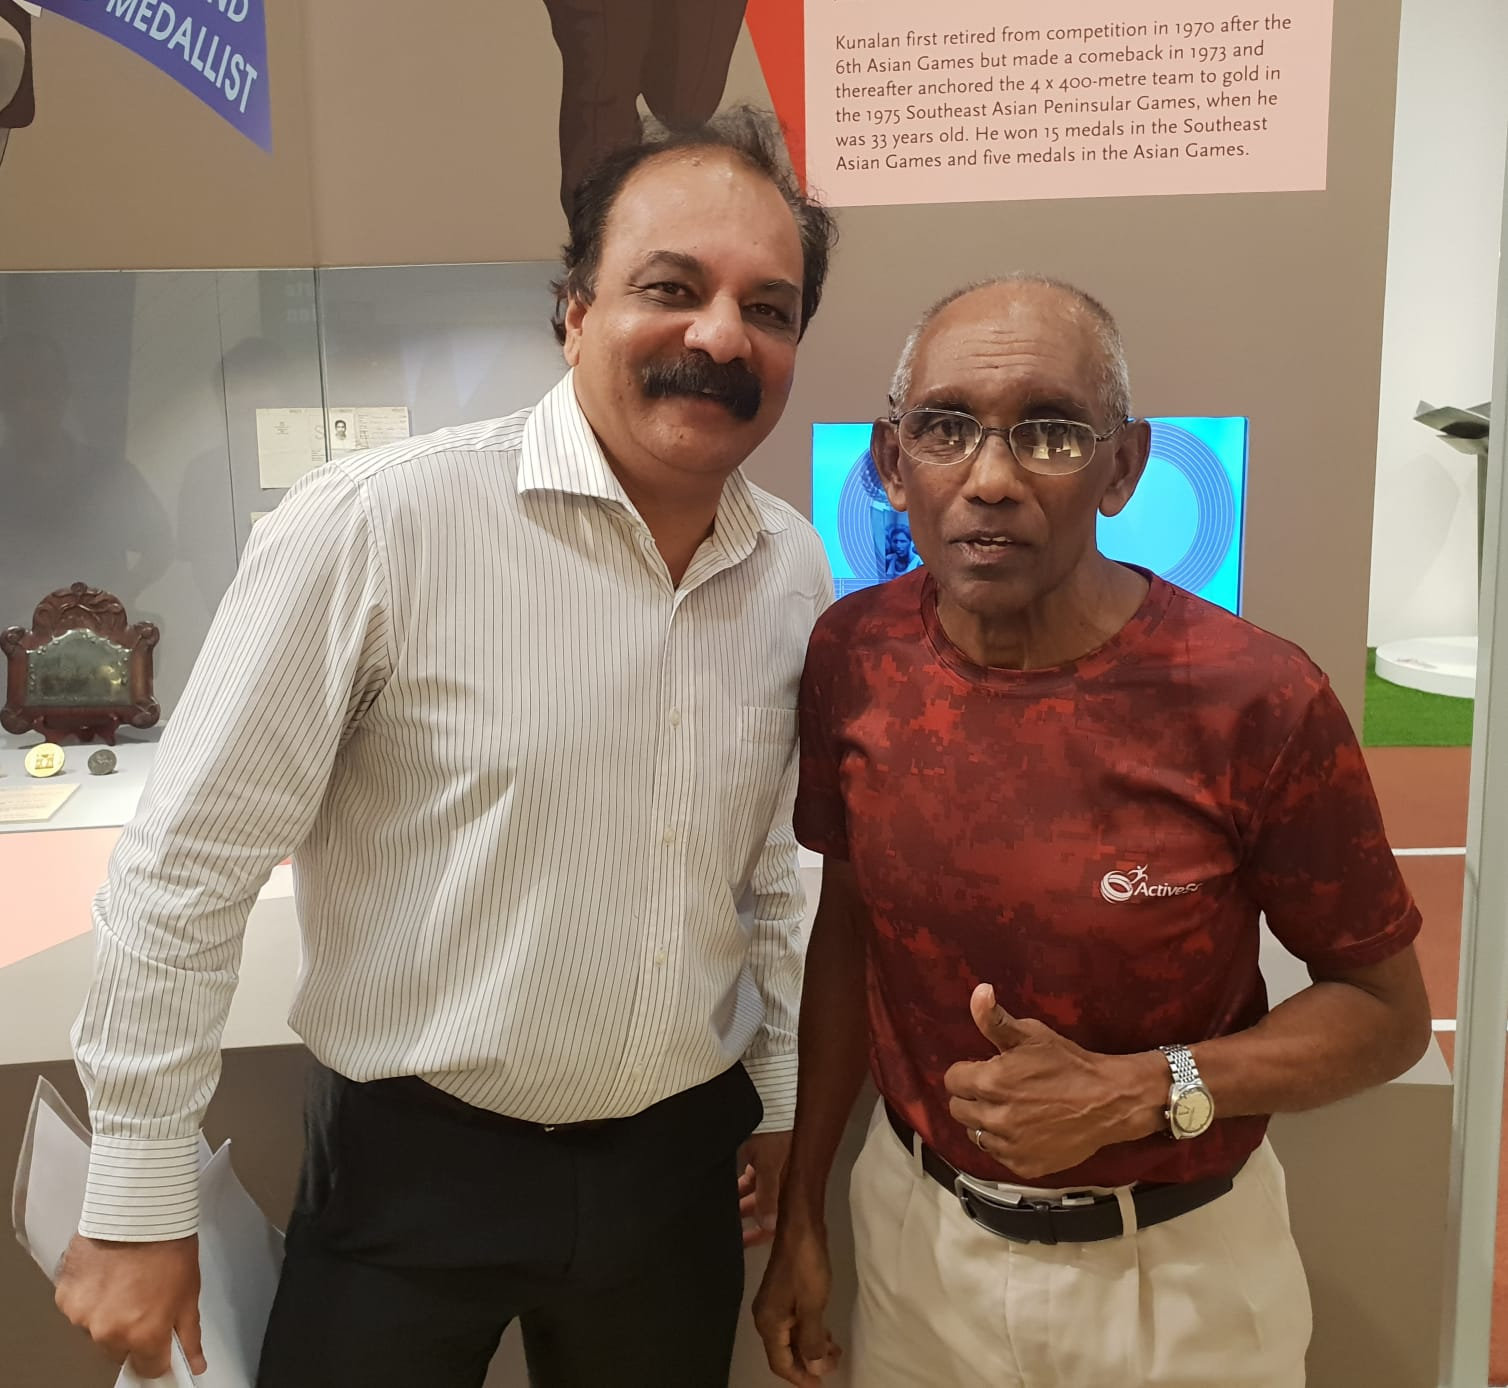 V K Santosh Kumar with the legend C Kunalan